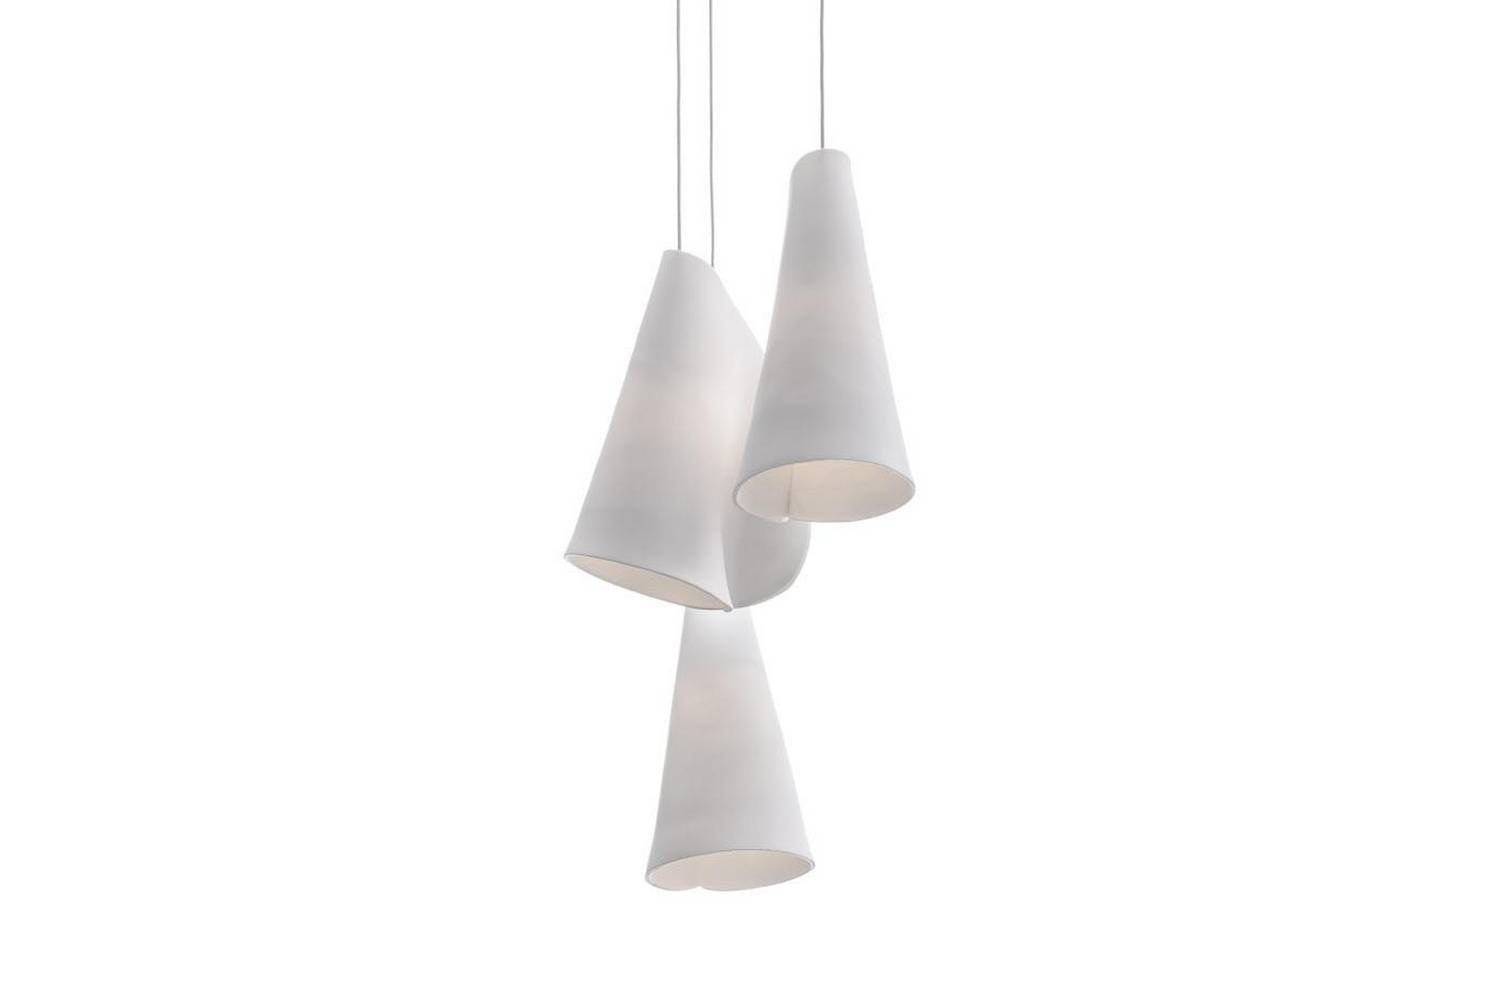 21.3 Standard Suspension Lamp by Omer Arbel for Bocci